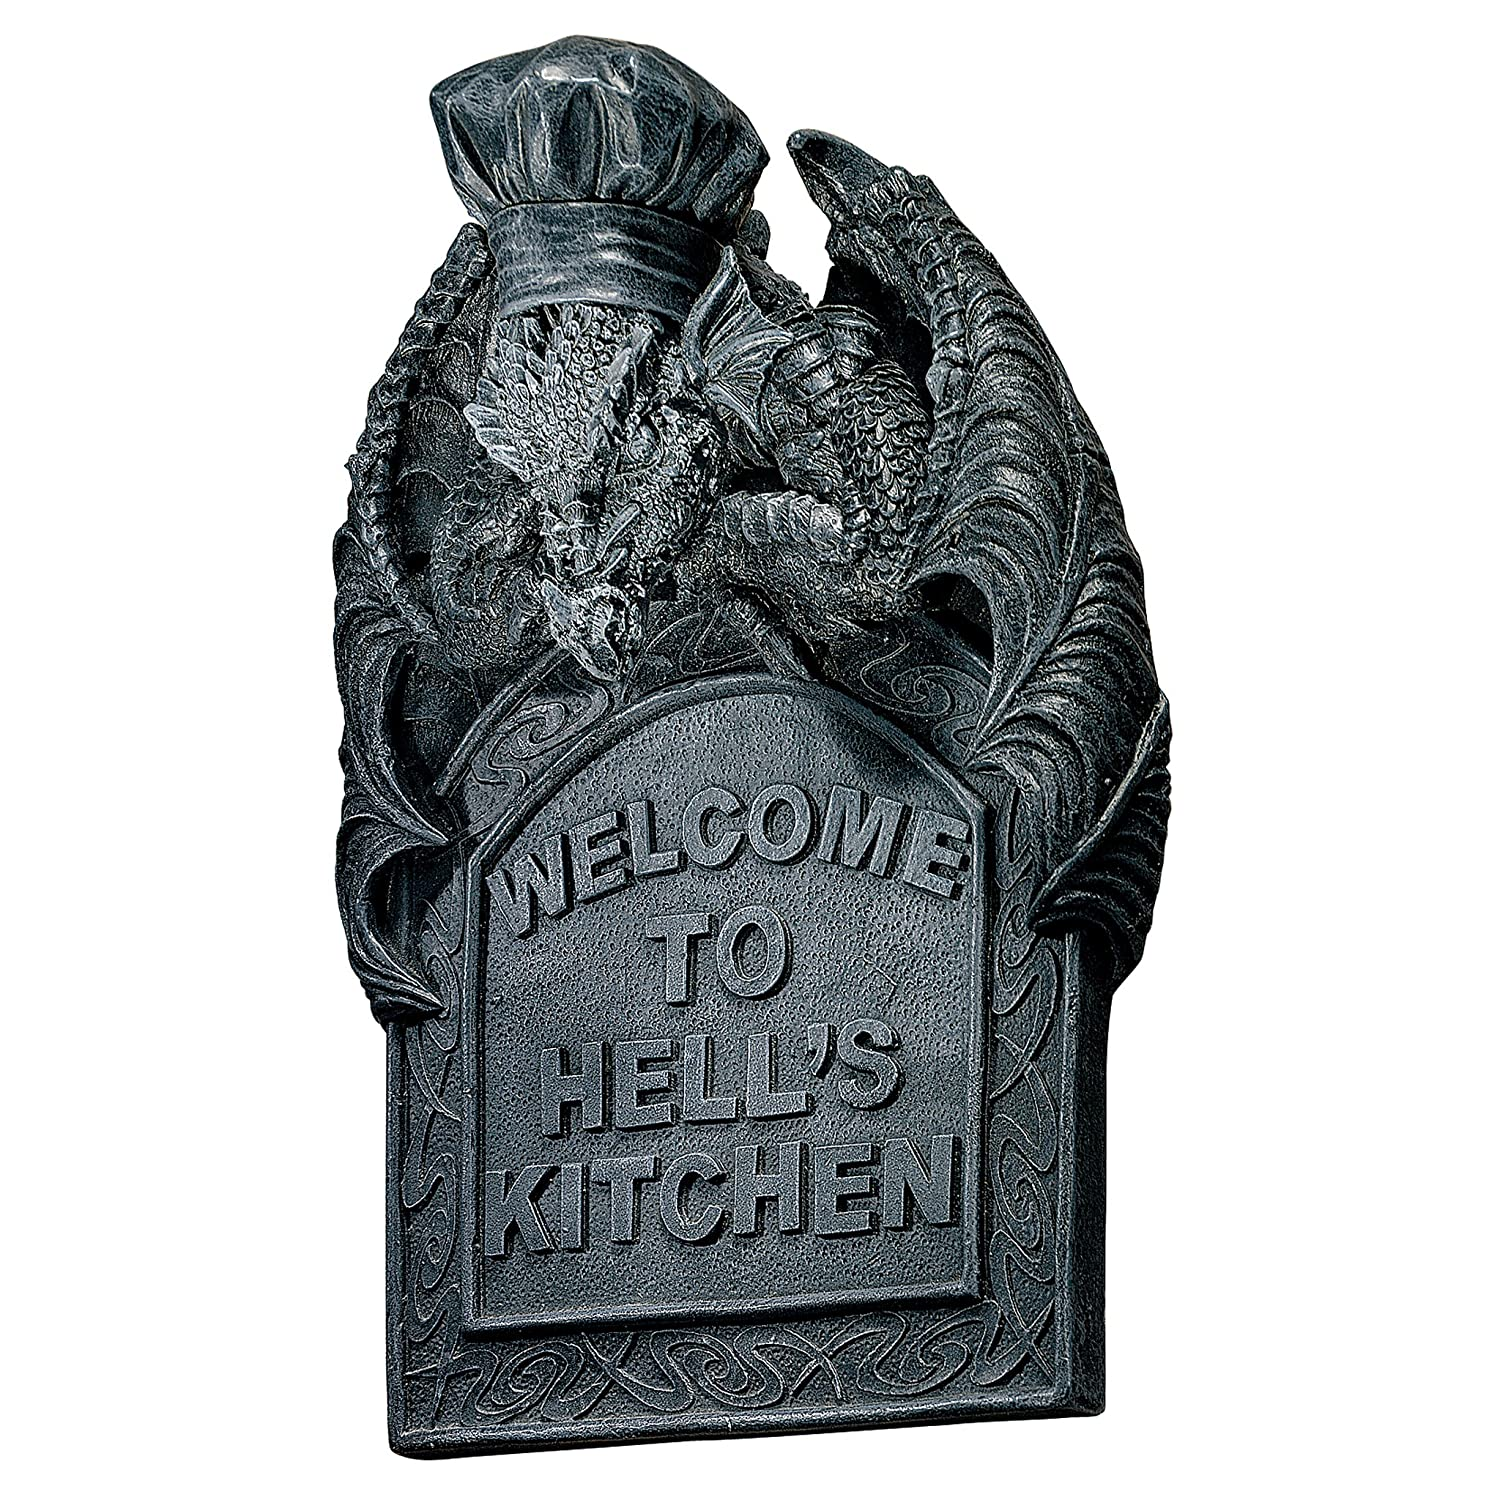 Design Toscano Hell's Kitchen Sculptural Wall Plaque - Set of 2 CL94737